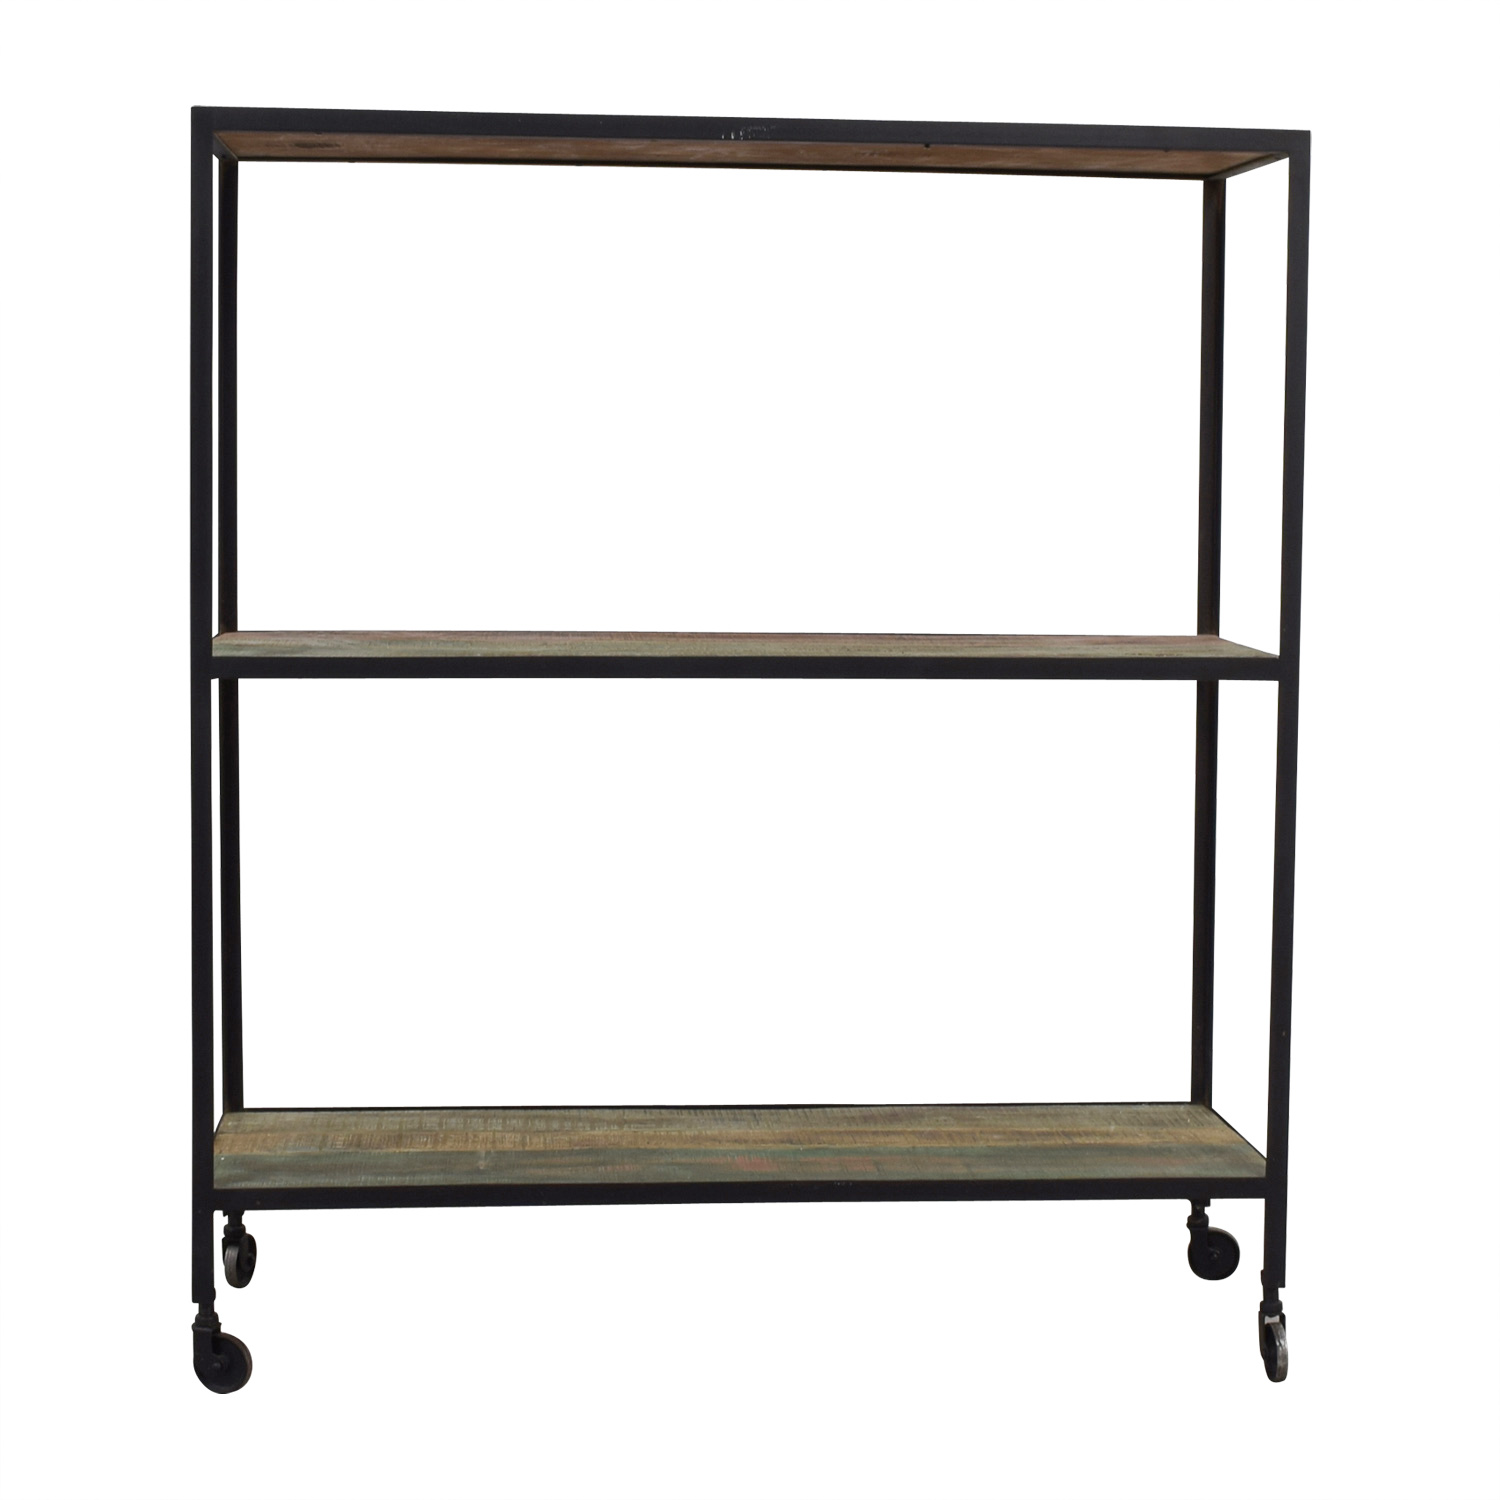 Nadeau Nadeau Rustic Three-Tier Shelf on Castors